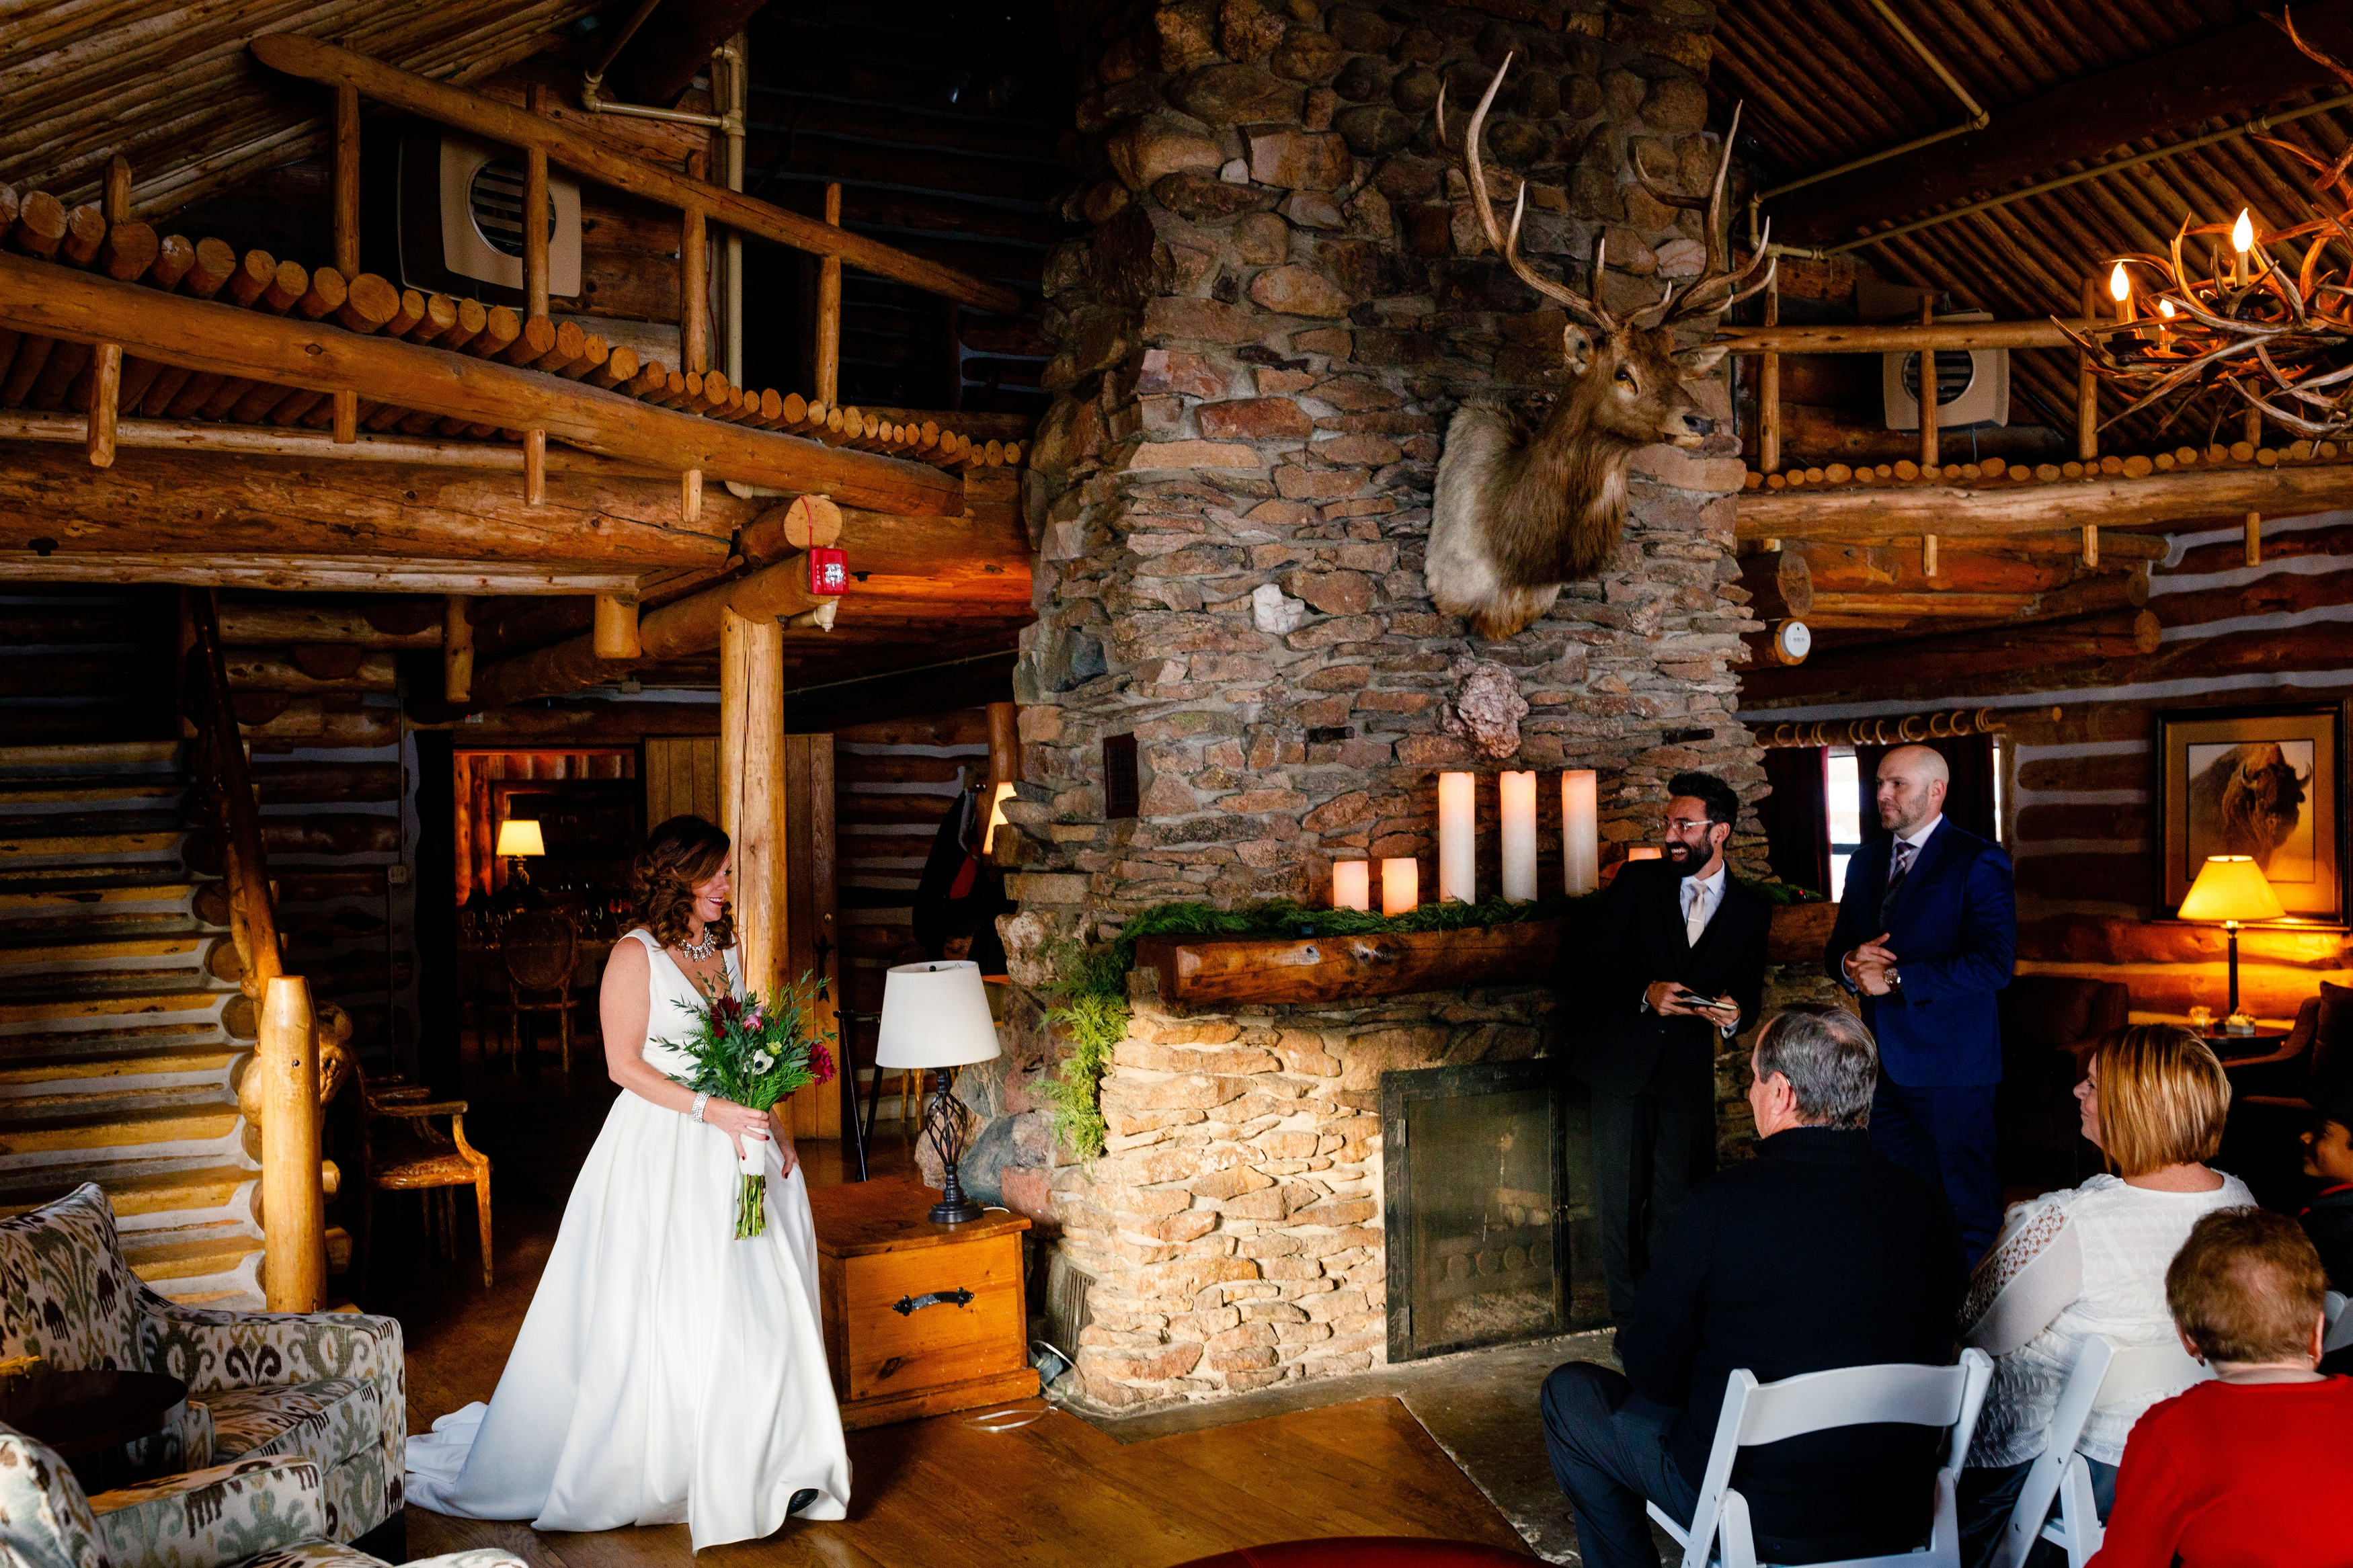 A wedding ceremony inside the Keystone Ranch Lodge.